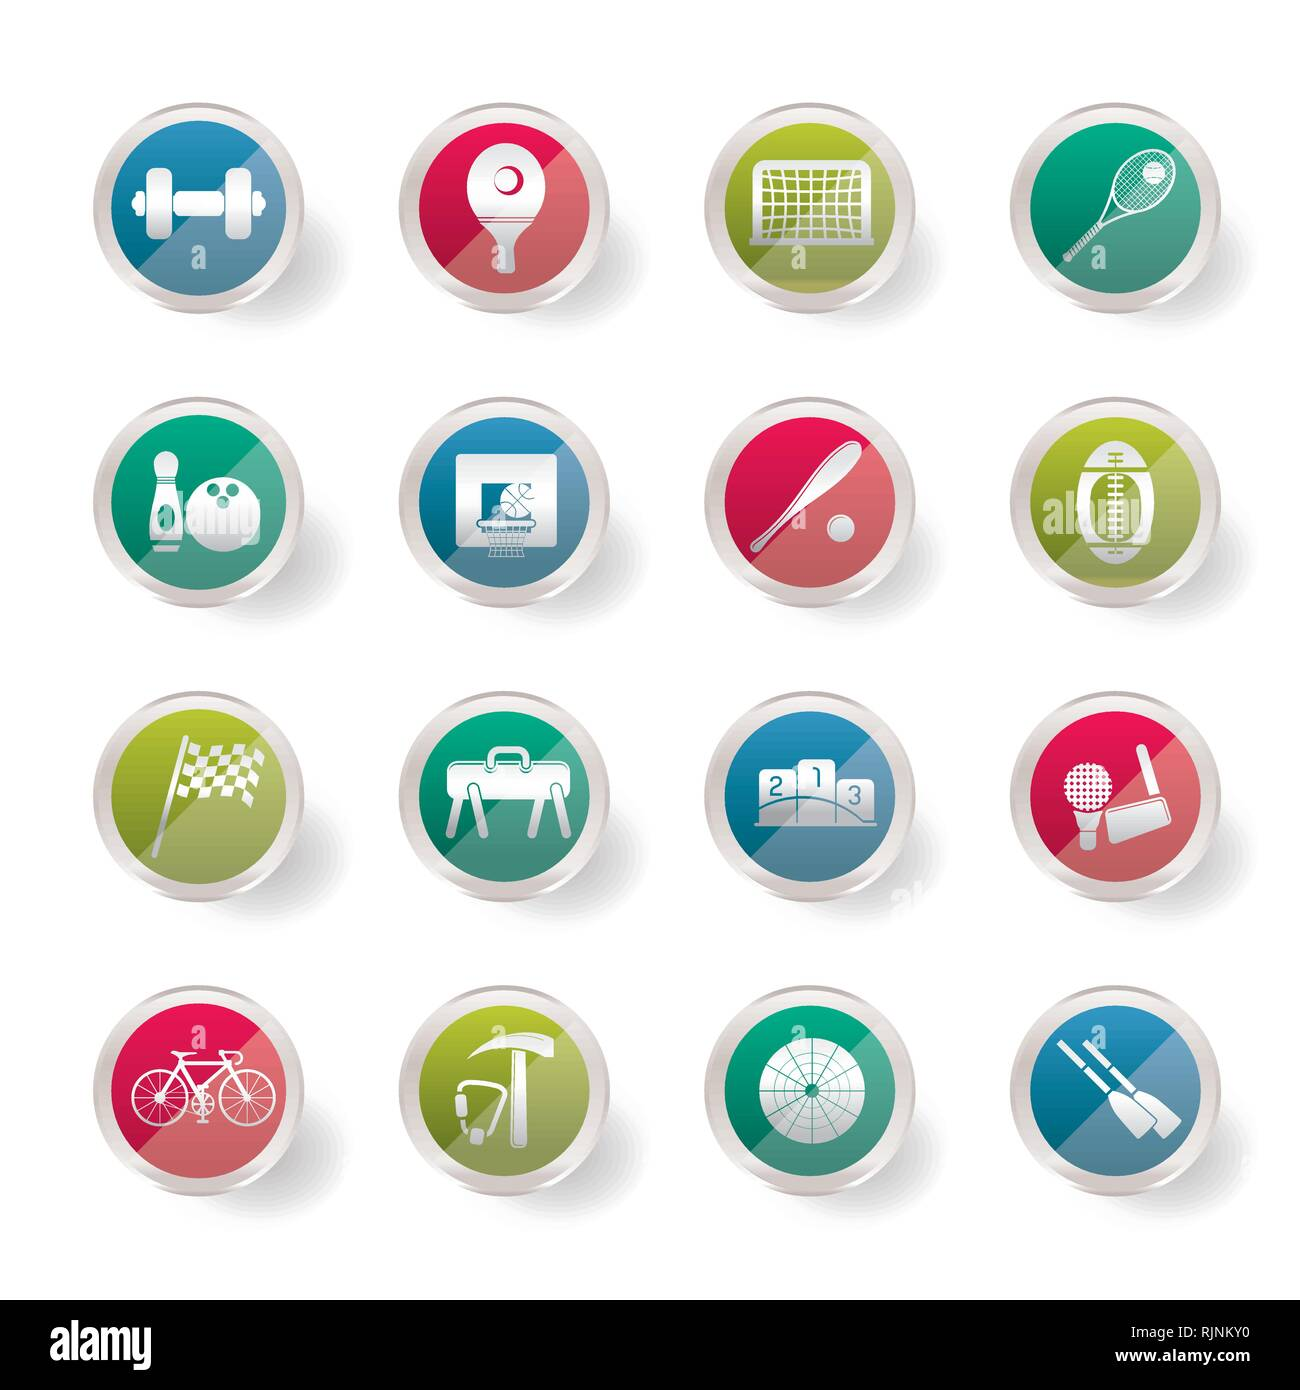 Stylized  Simple Sports gear and tools icons over colored background - vector icon set - Stock Vector